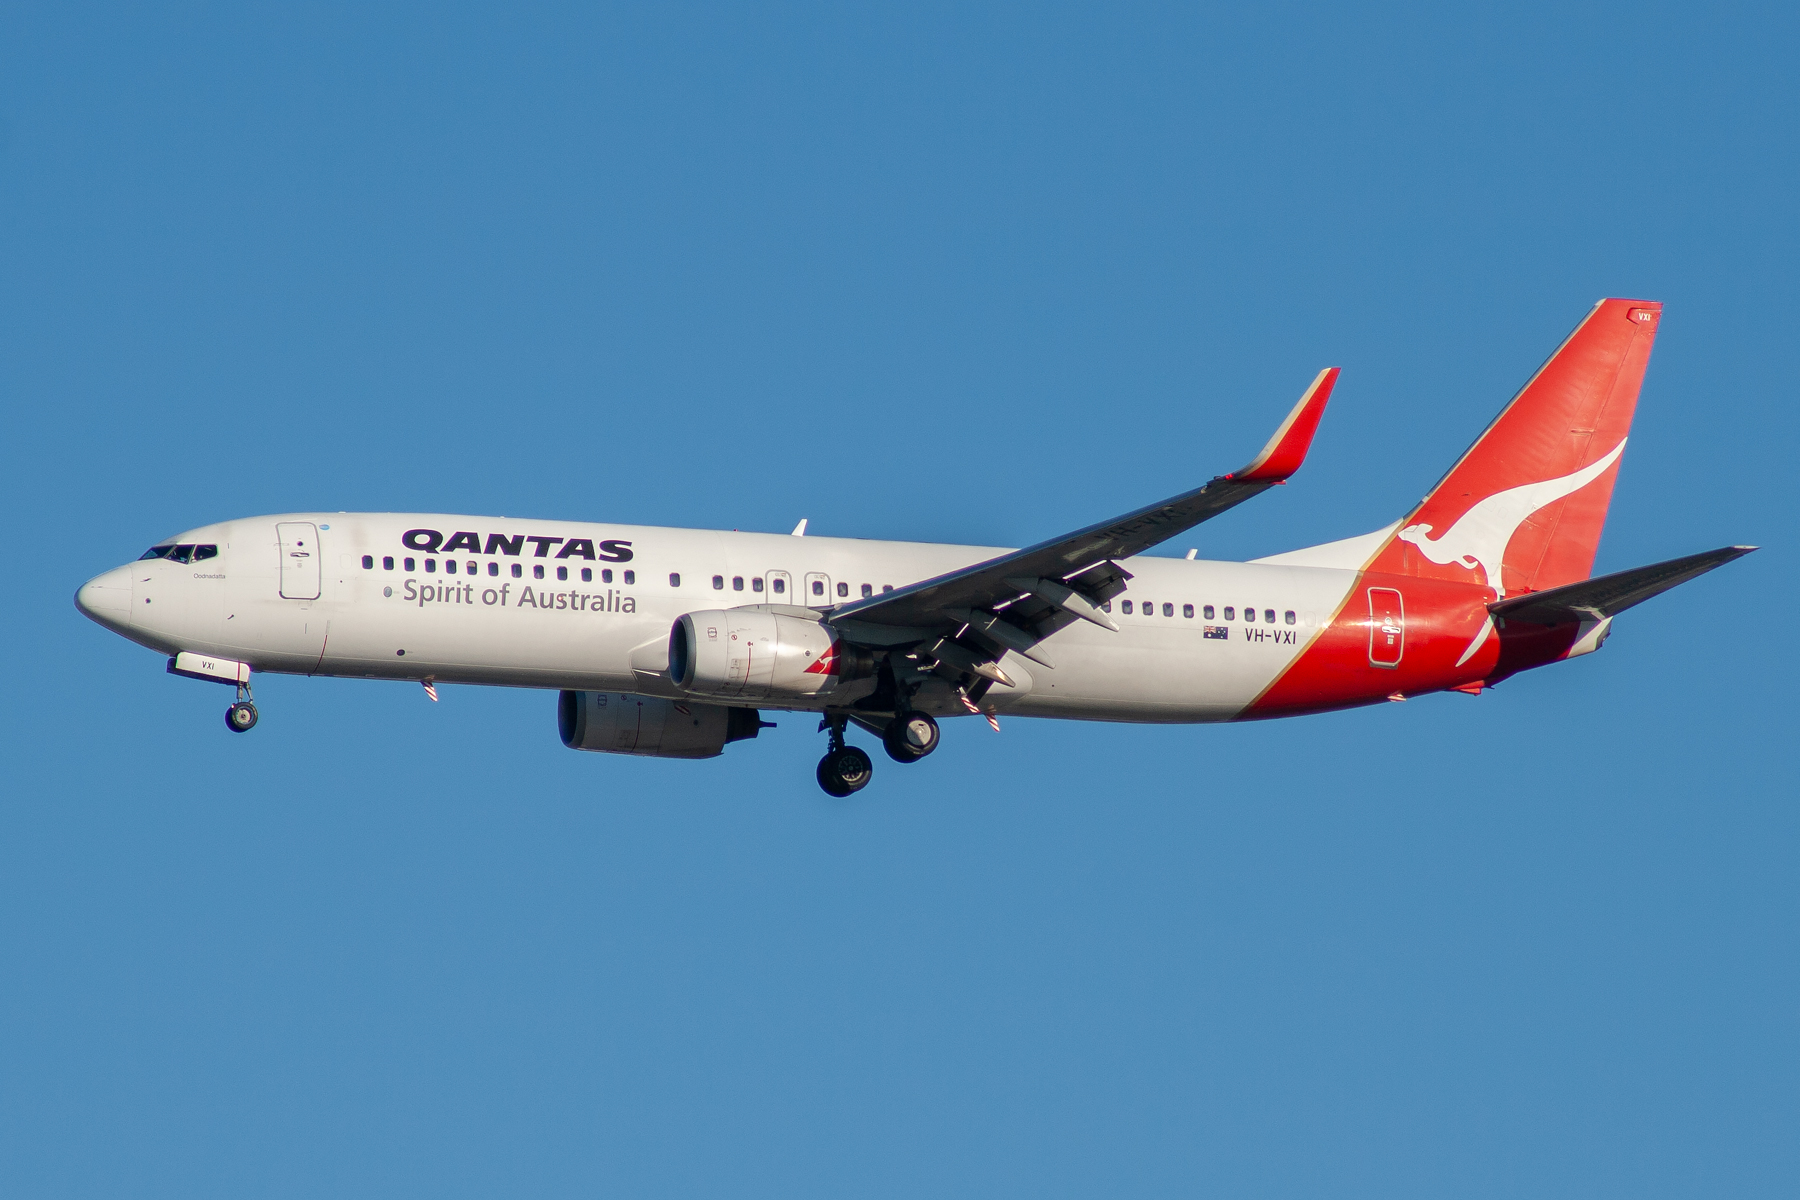 Qantas Boeing 737-800 VH-VXI at Kingsford Smith